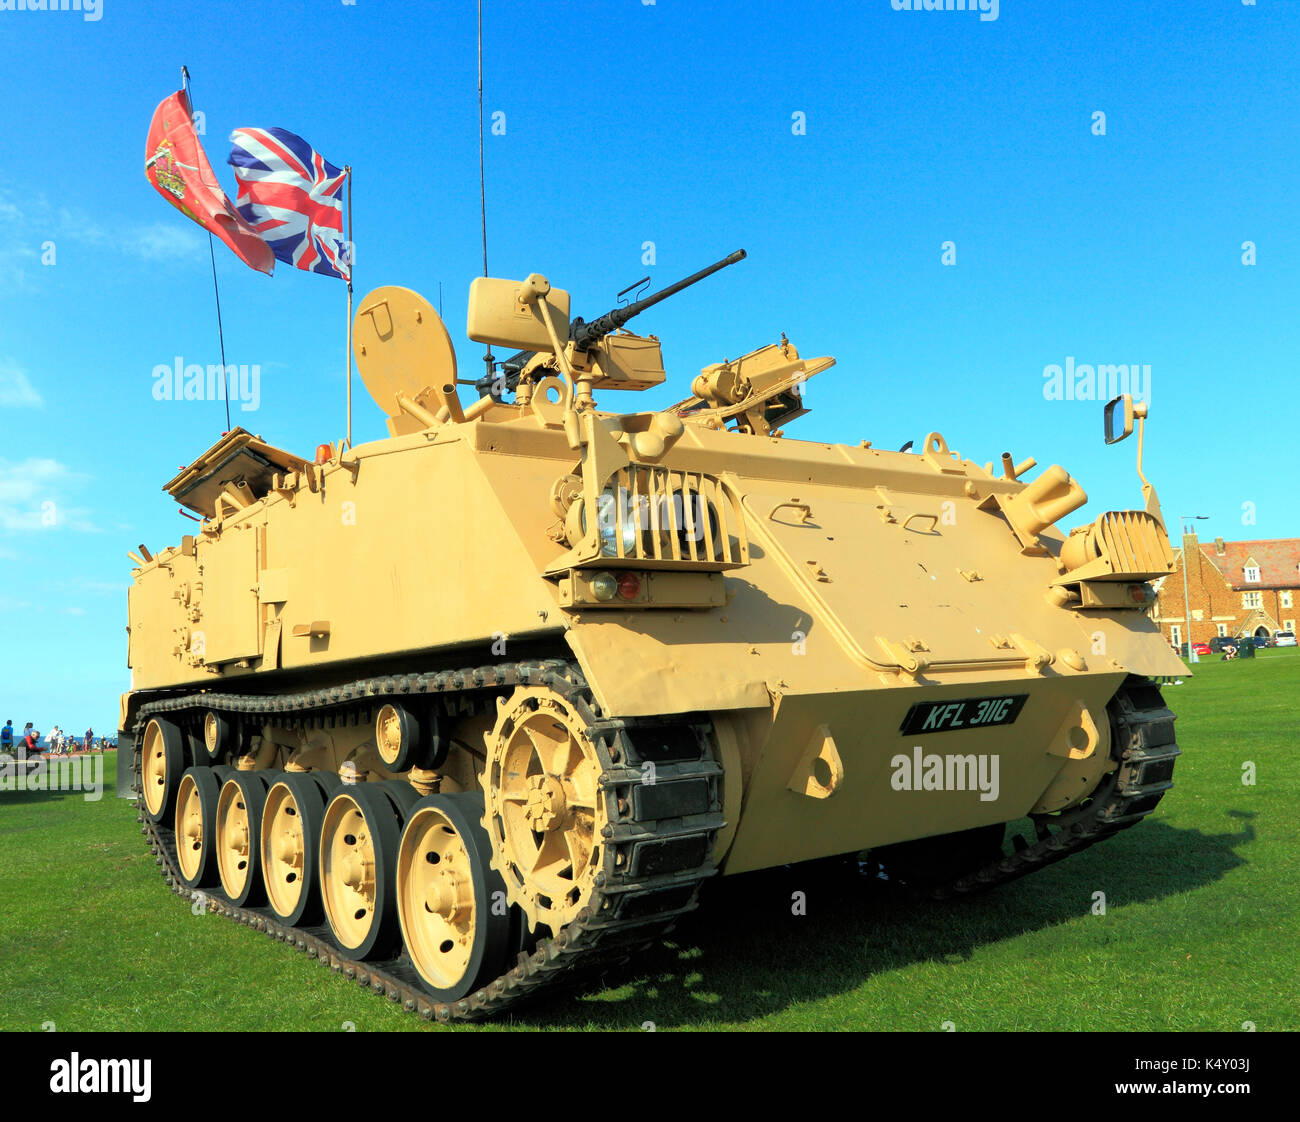 British Army 432 Tank, deployed in 1st Iraq War, military, vehicle, vehicles, England, UK armoured personel carrier - Stock Image